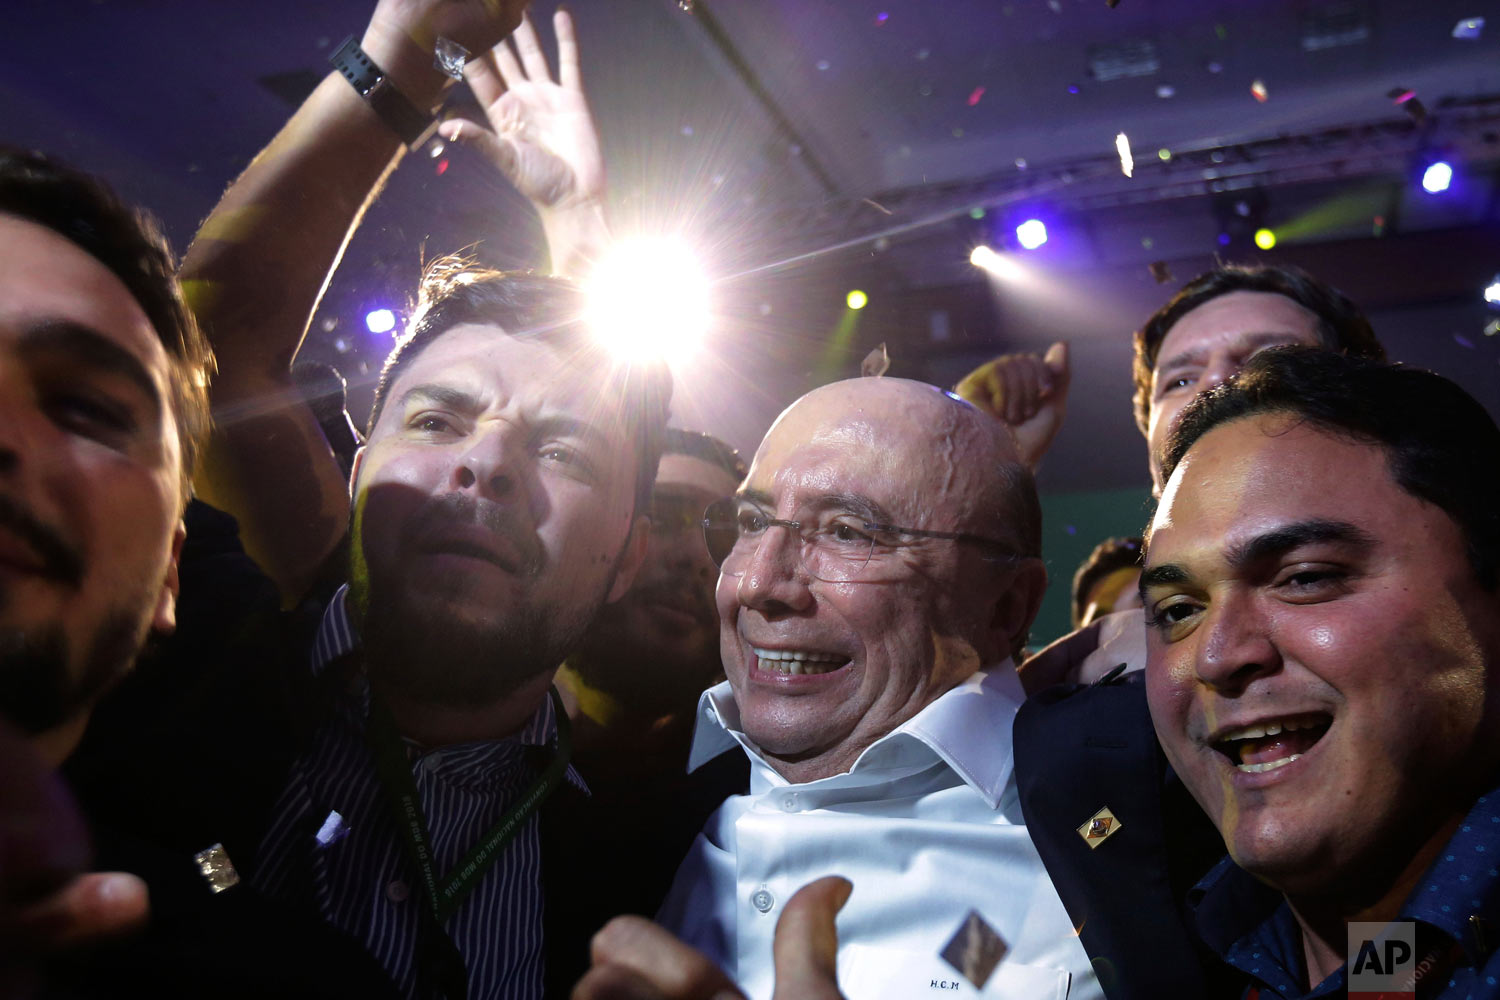 Brazil's former finance minister Henrique Meirelles, center, celebrates with supporters at the end of The Brazilian Democratic Movement party convention, in Brasilia, Brazil, Aug. 2, 2018. The Brazilian Democratic Movement announced Meirelles as its candidate for the upcoming October election. (AP Photo/Eraldo Peres)